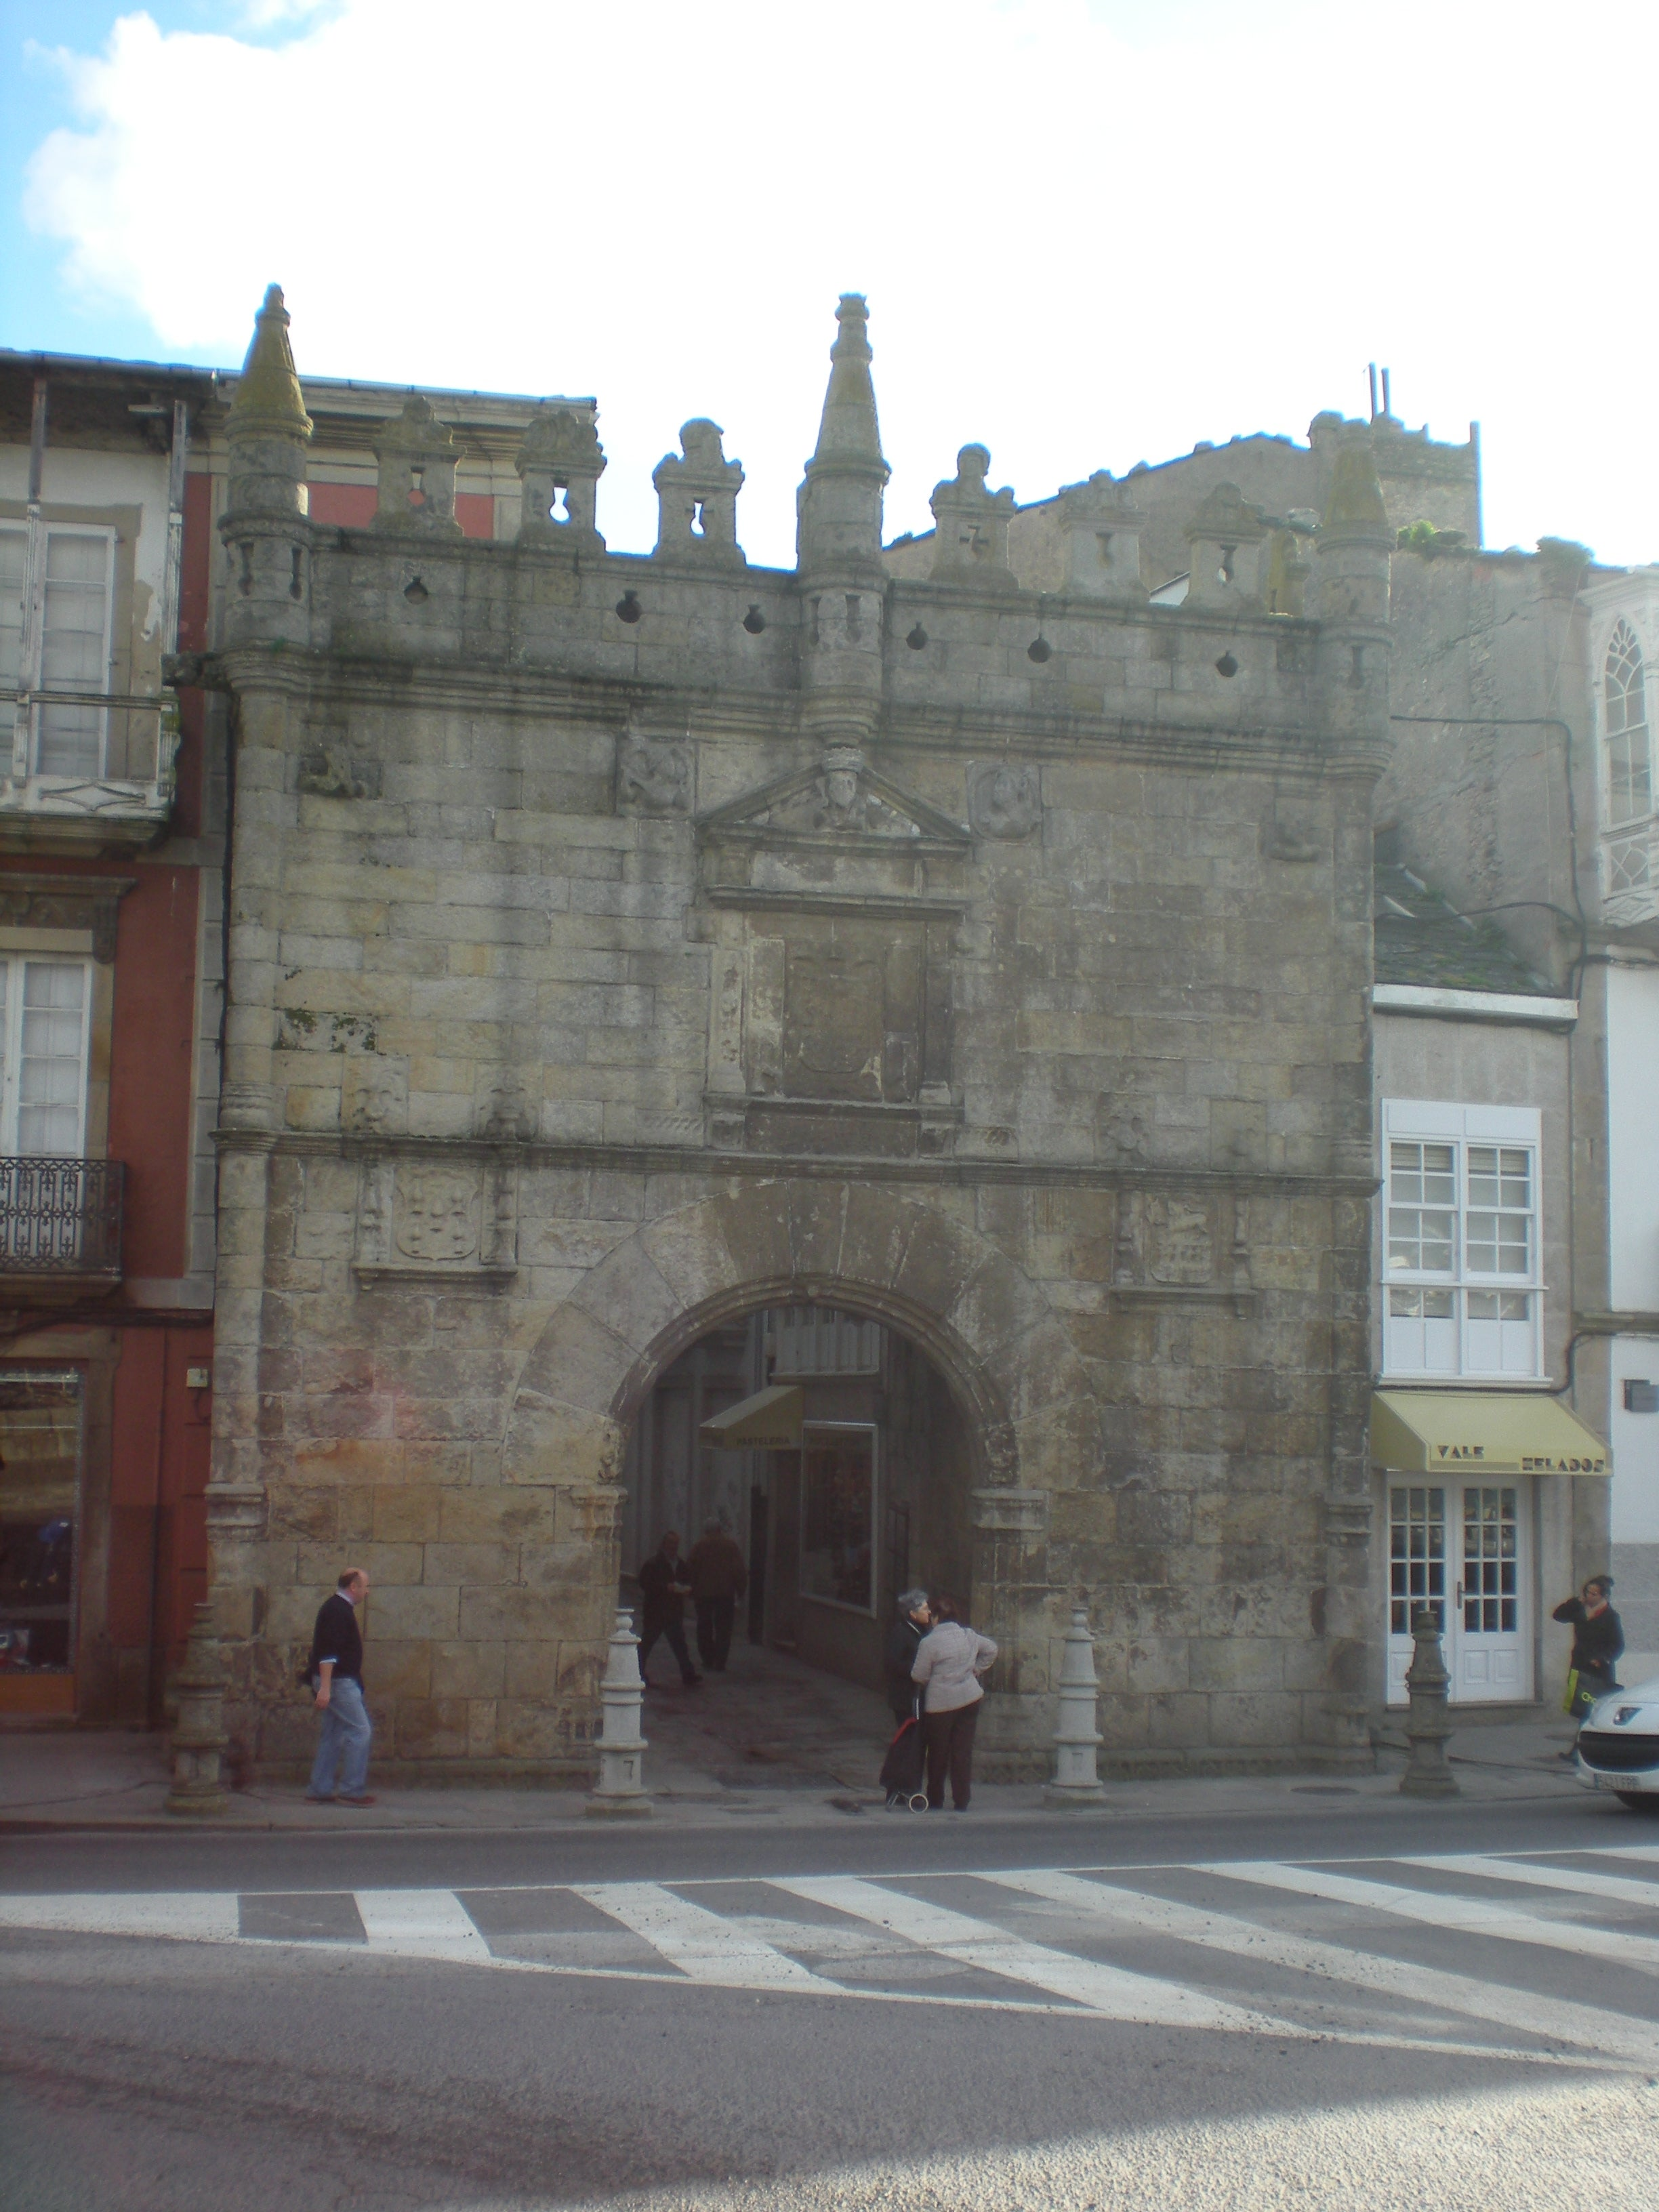 Door of Carlos V (or the castle of the bridge)